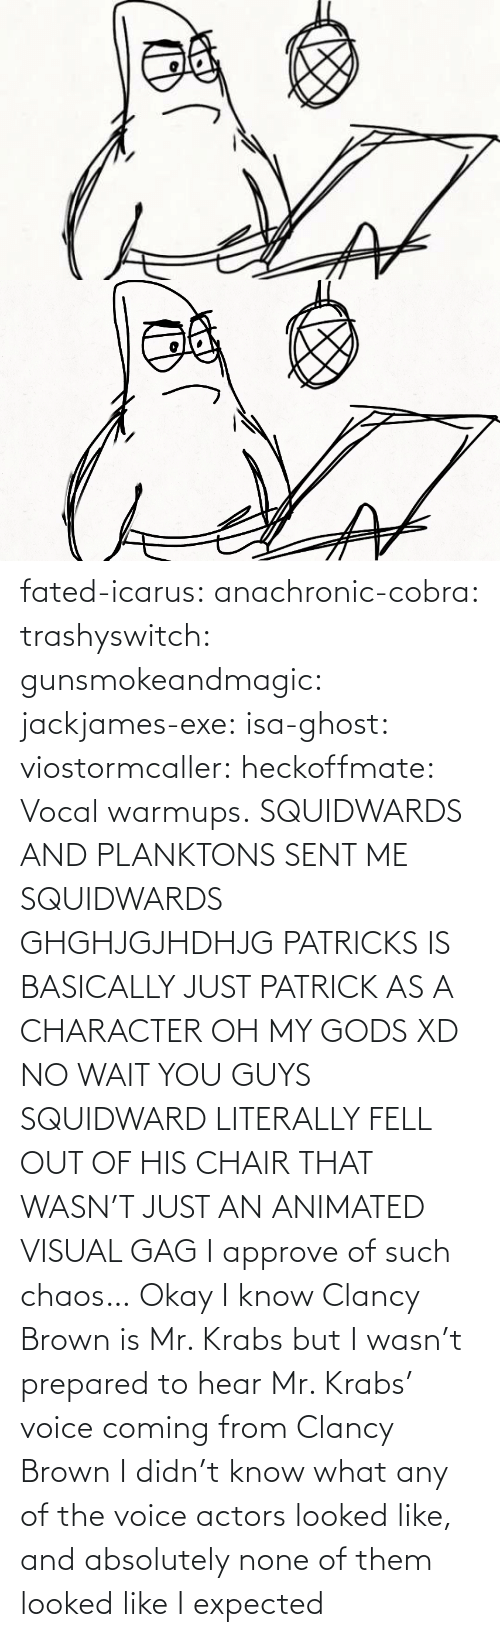 oh my: fated-icarus:  anachronic-cobra: trashyswitch:  gunsmokeandmagic:  jackjames-exe:  isa-ghost:   viostormcaller:  heckoffmate: Vocal warmups. SQUIDWARDS AND PLANKTONS SENT ME  SQUIDWARDS GHGHJGJHDHJG   PATRICKS IS BASICALLY JUST PATRICK AS A CHARACTER OH MY GODS XD   NO WAIT YOU GUYS SQUIDWARD LITERALLY FELL OUT OF HIS CHAIR THAT WASN'T JUST AN ANIMATED VISUAL GAG    I approve of such chaos…    Okay I know Clancy Brown is Mr. Krabs but I wasn't prepared to hear Mr. Krabs' voice coming from Clancy Brown    I didn't know what any of the voice actors looked like, and absolutely none of them looked like I expected